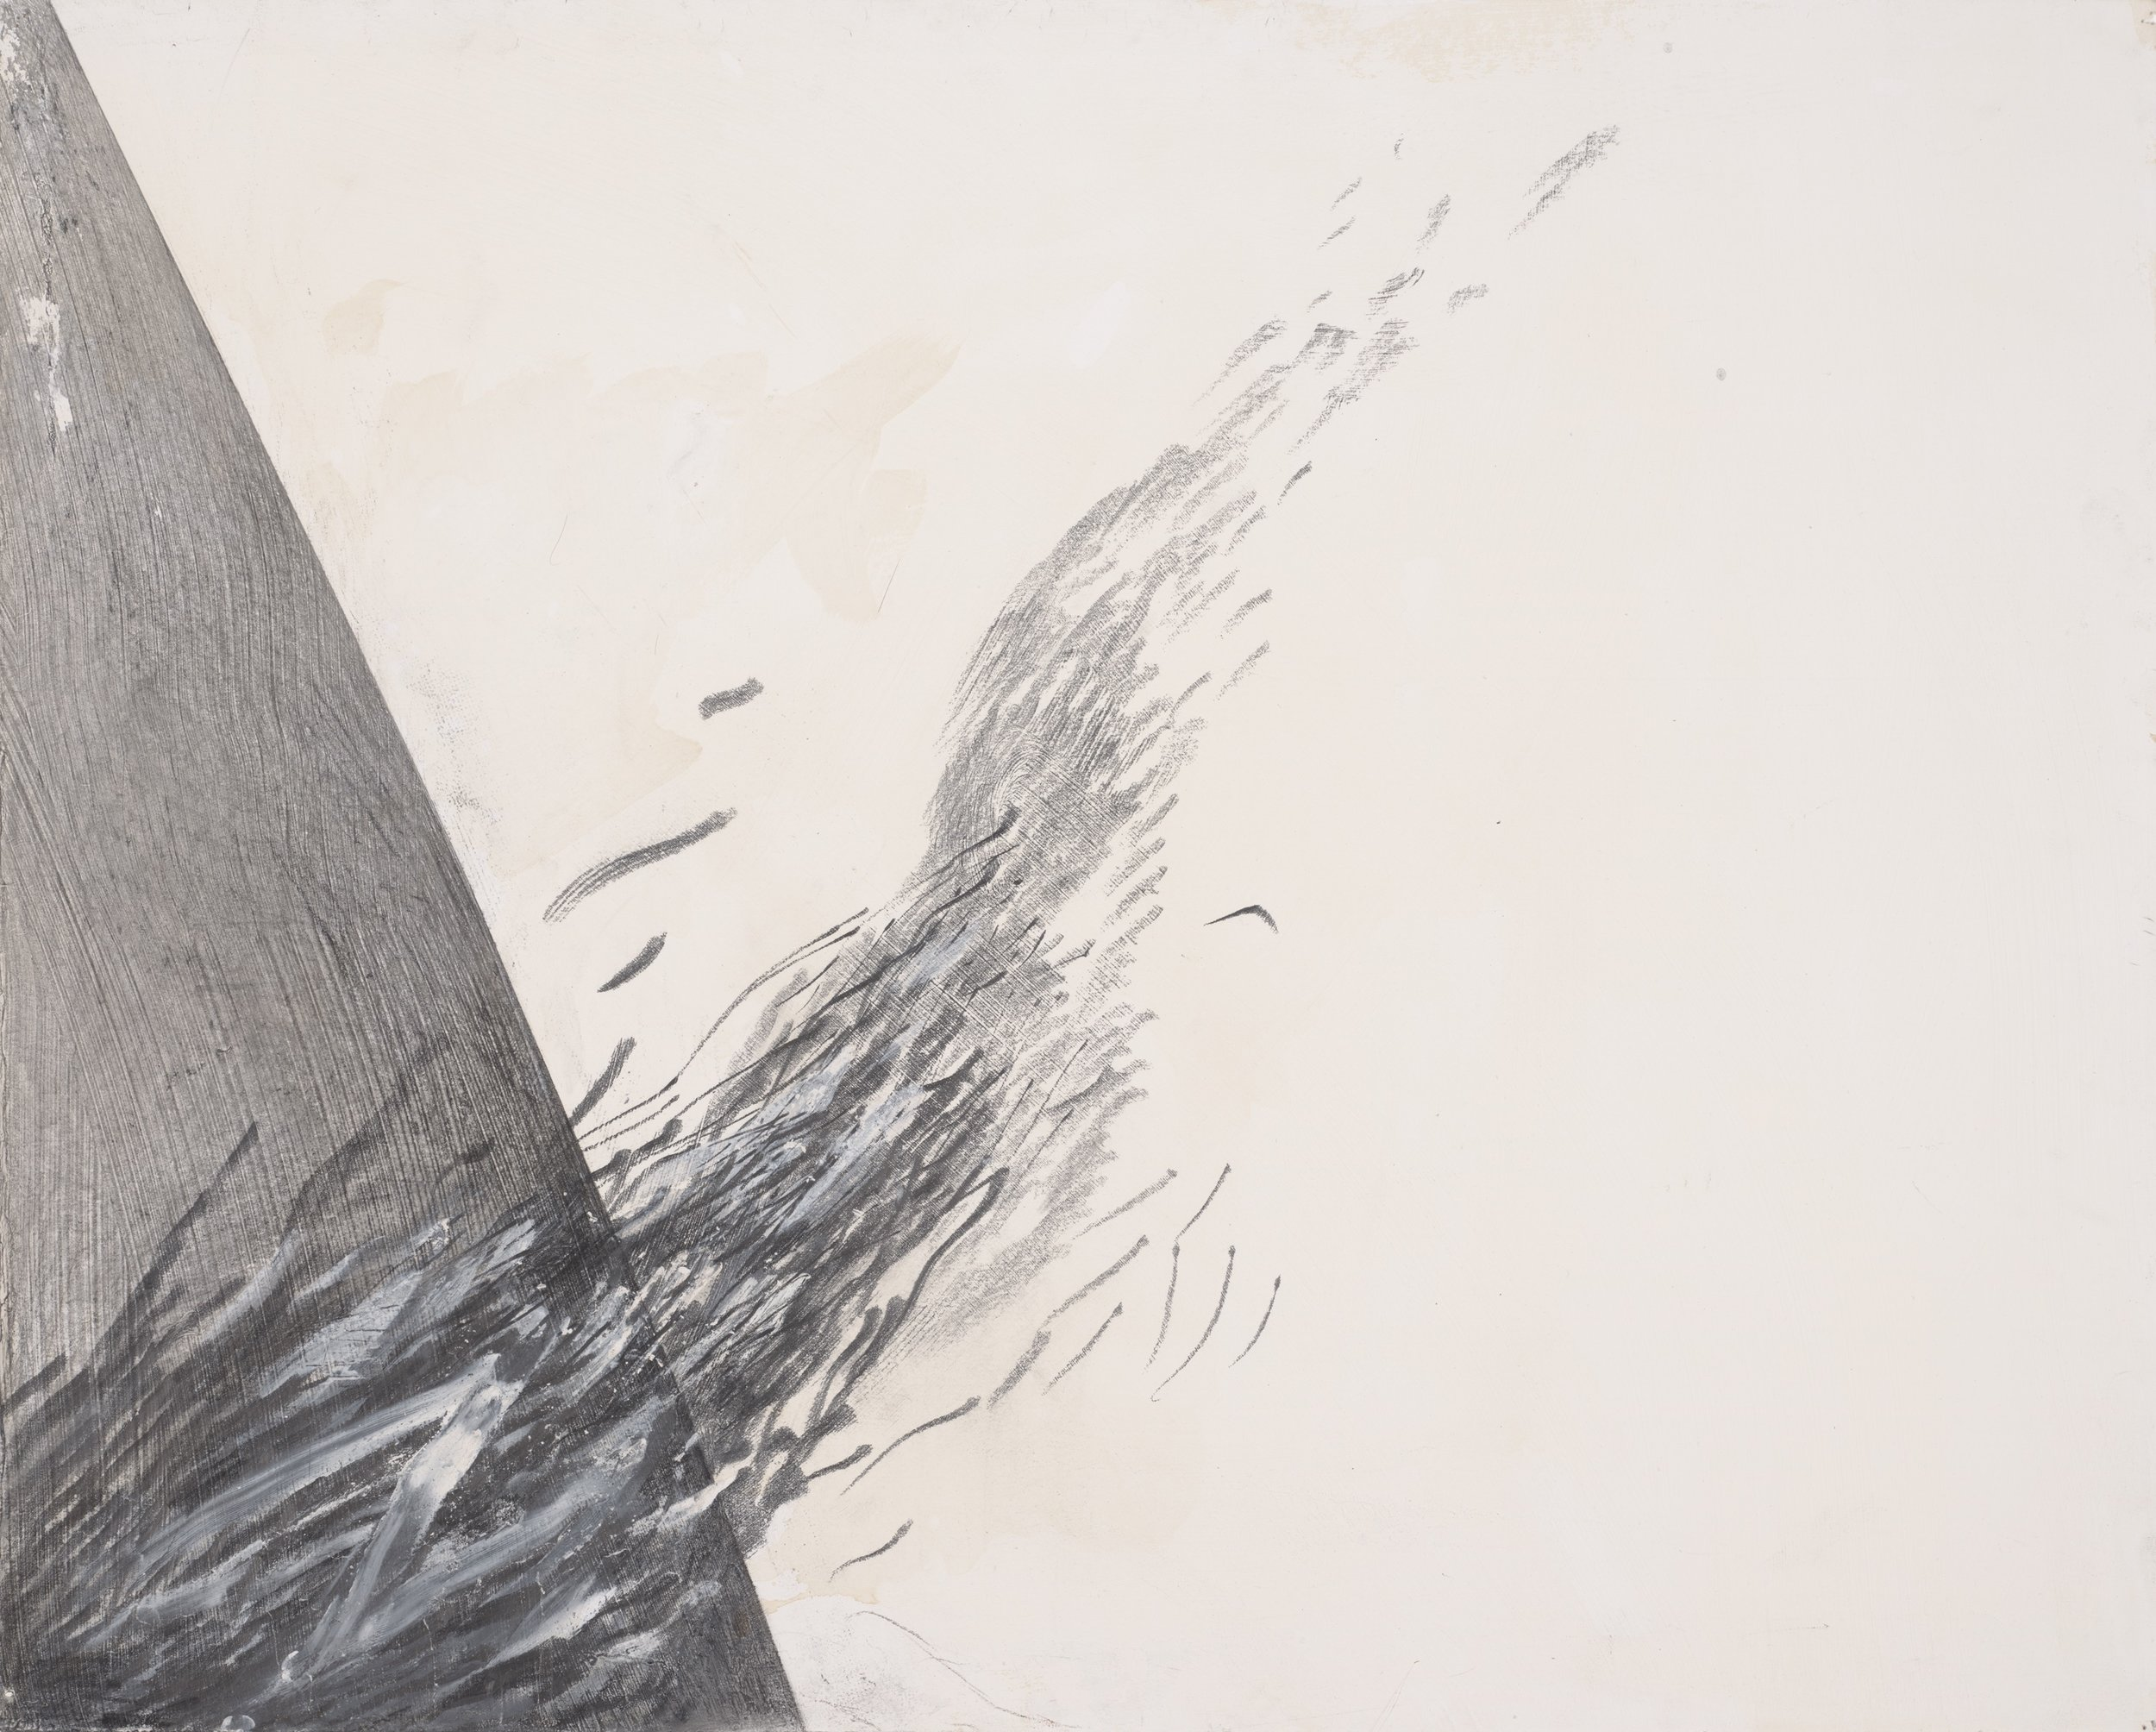 Jay DeFeo   The Tissue of Falling Columns No. 8, 1988 oil and graphite on rag board,  16 x 20 inches (40.6 x 50.8 cm), framed size: 24 x 28 x 1-1/2 inches